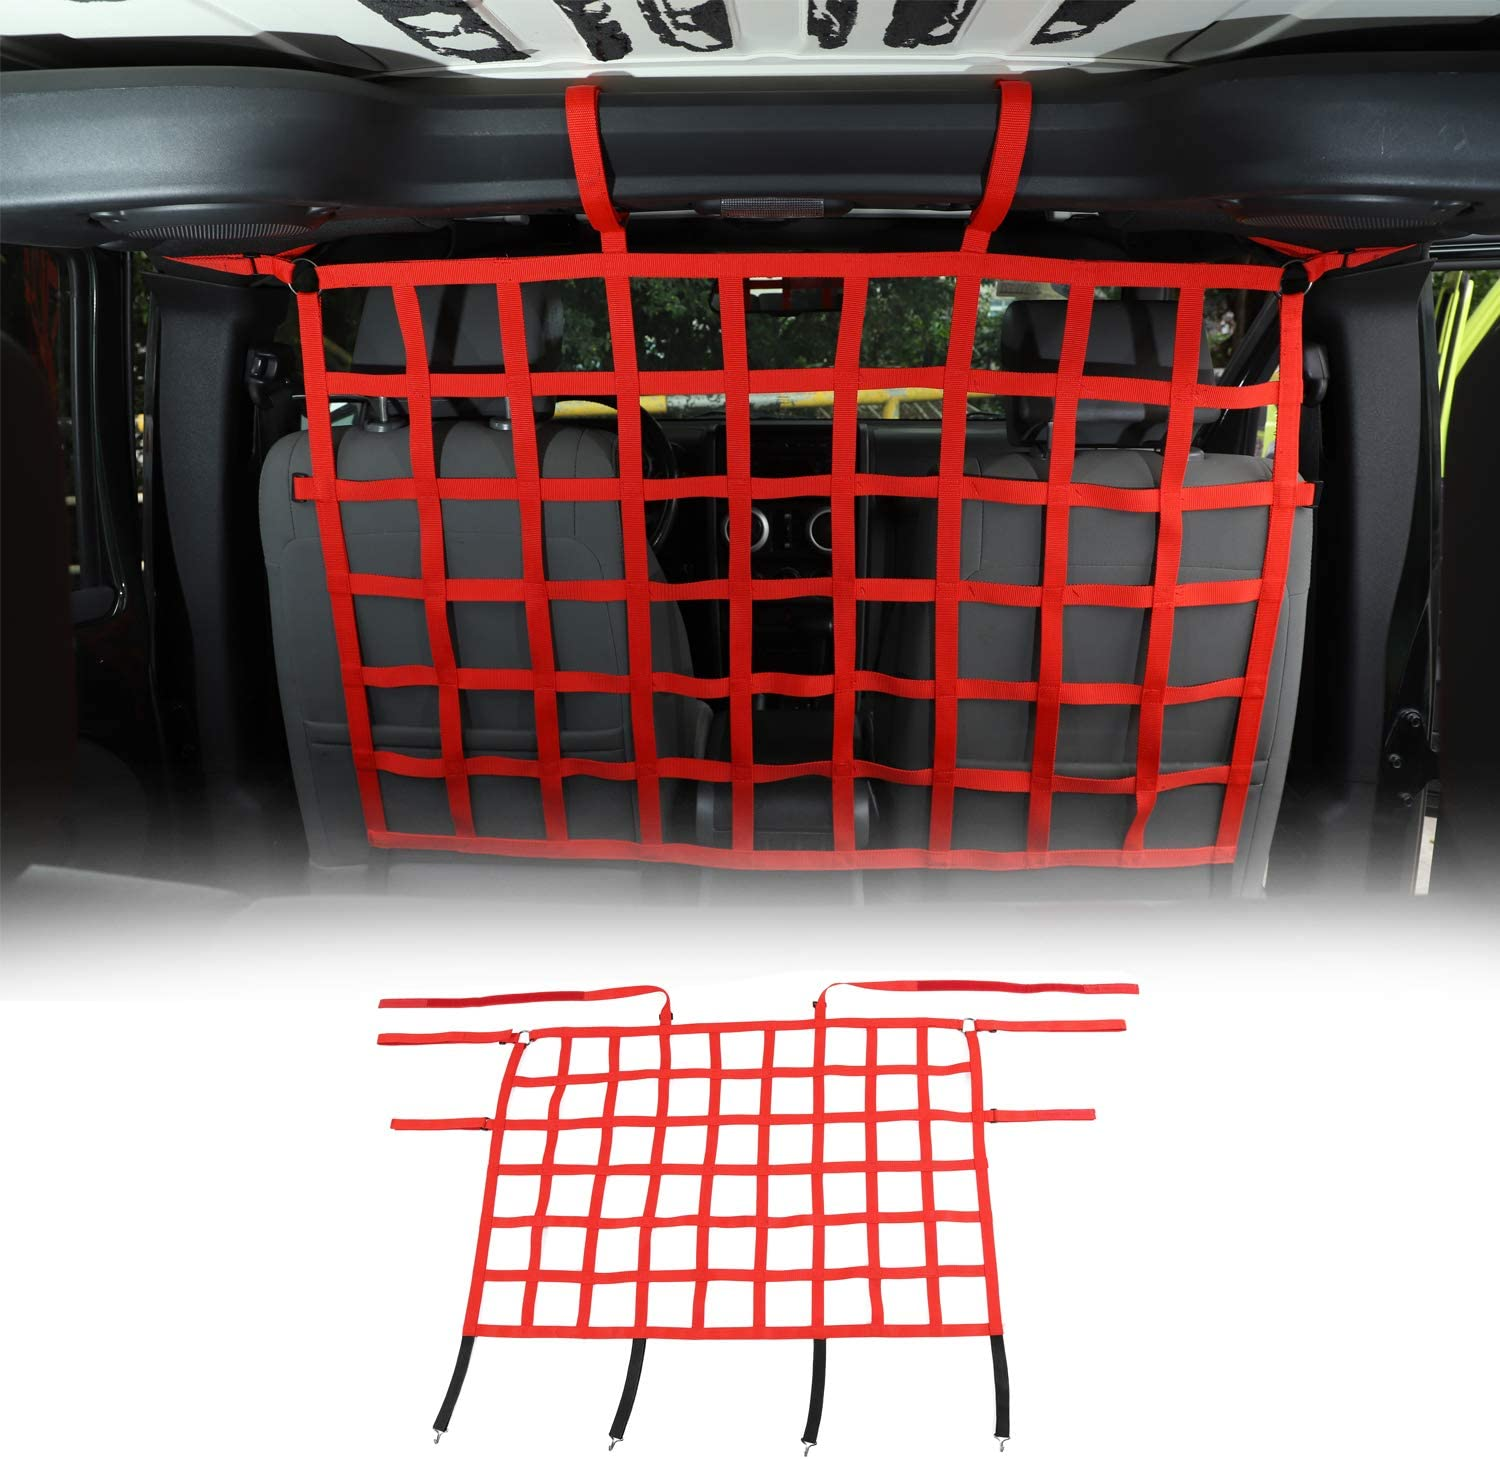 RT-TCZ Vehicle Pet Barrier Backseat Mesh Dog Car Divider Net for Jeep Wrangler Accessories with Auto Safety Mesh Organizer for 2007-2021 Jeep Wrangler JK JL JT 2 Door 4 Door Red